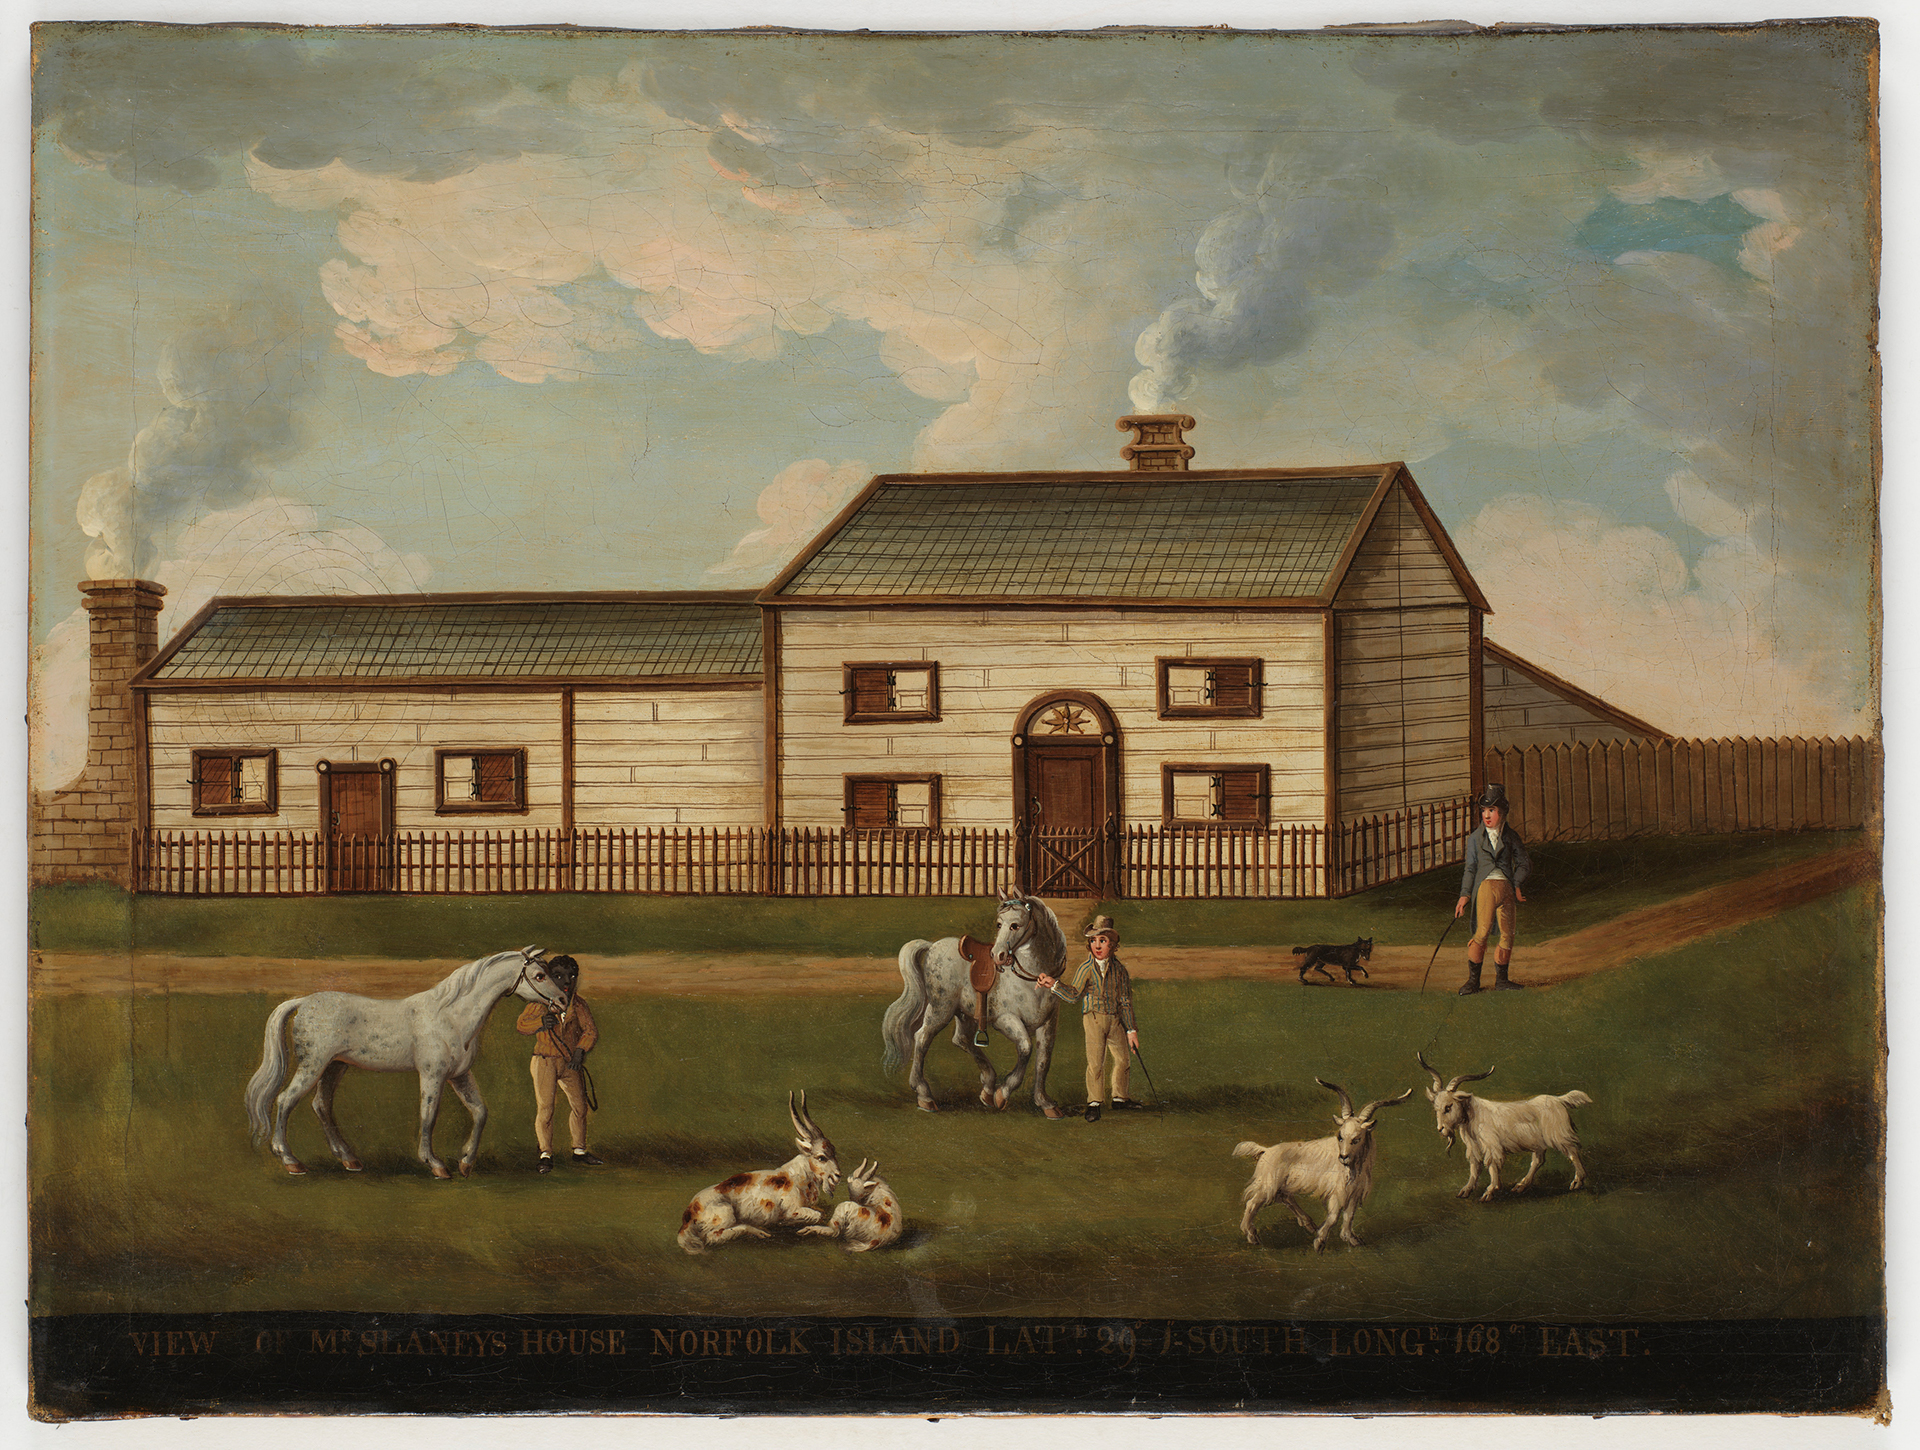 View of Mr Slaneys House, Norfolk Island, Lat. 29 1 - South Long. 168 East, ca. 1800 / oil painting attributed to English Naive School